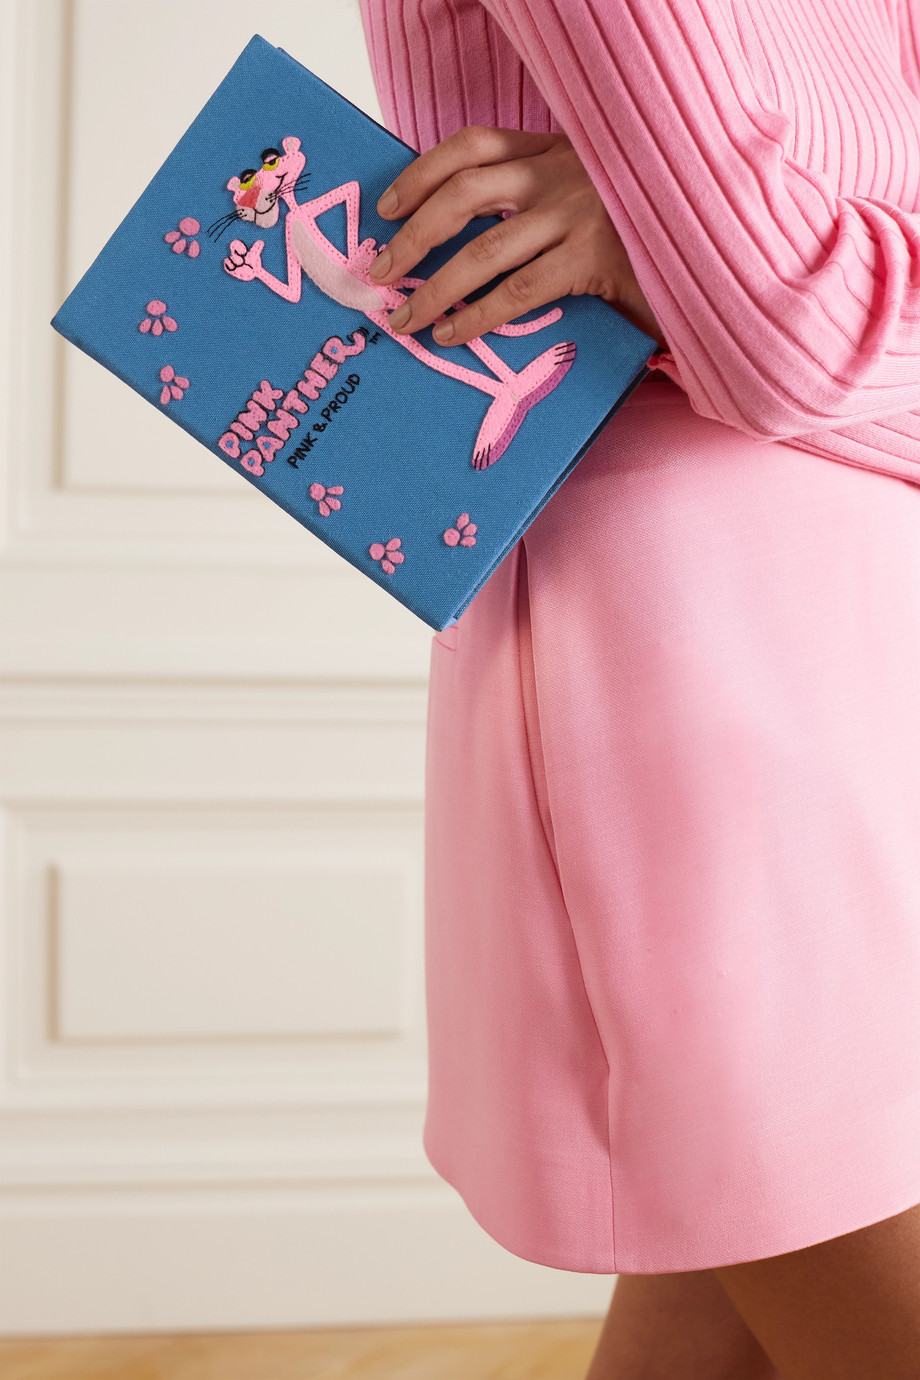 Olympia Le-Tan Pink Panther embroidered appliquéd canvas clutch